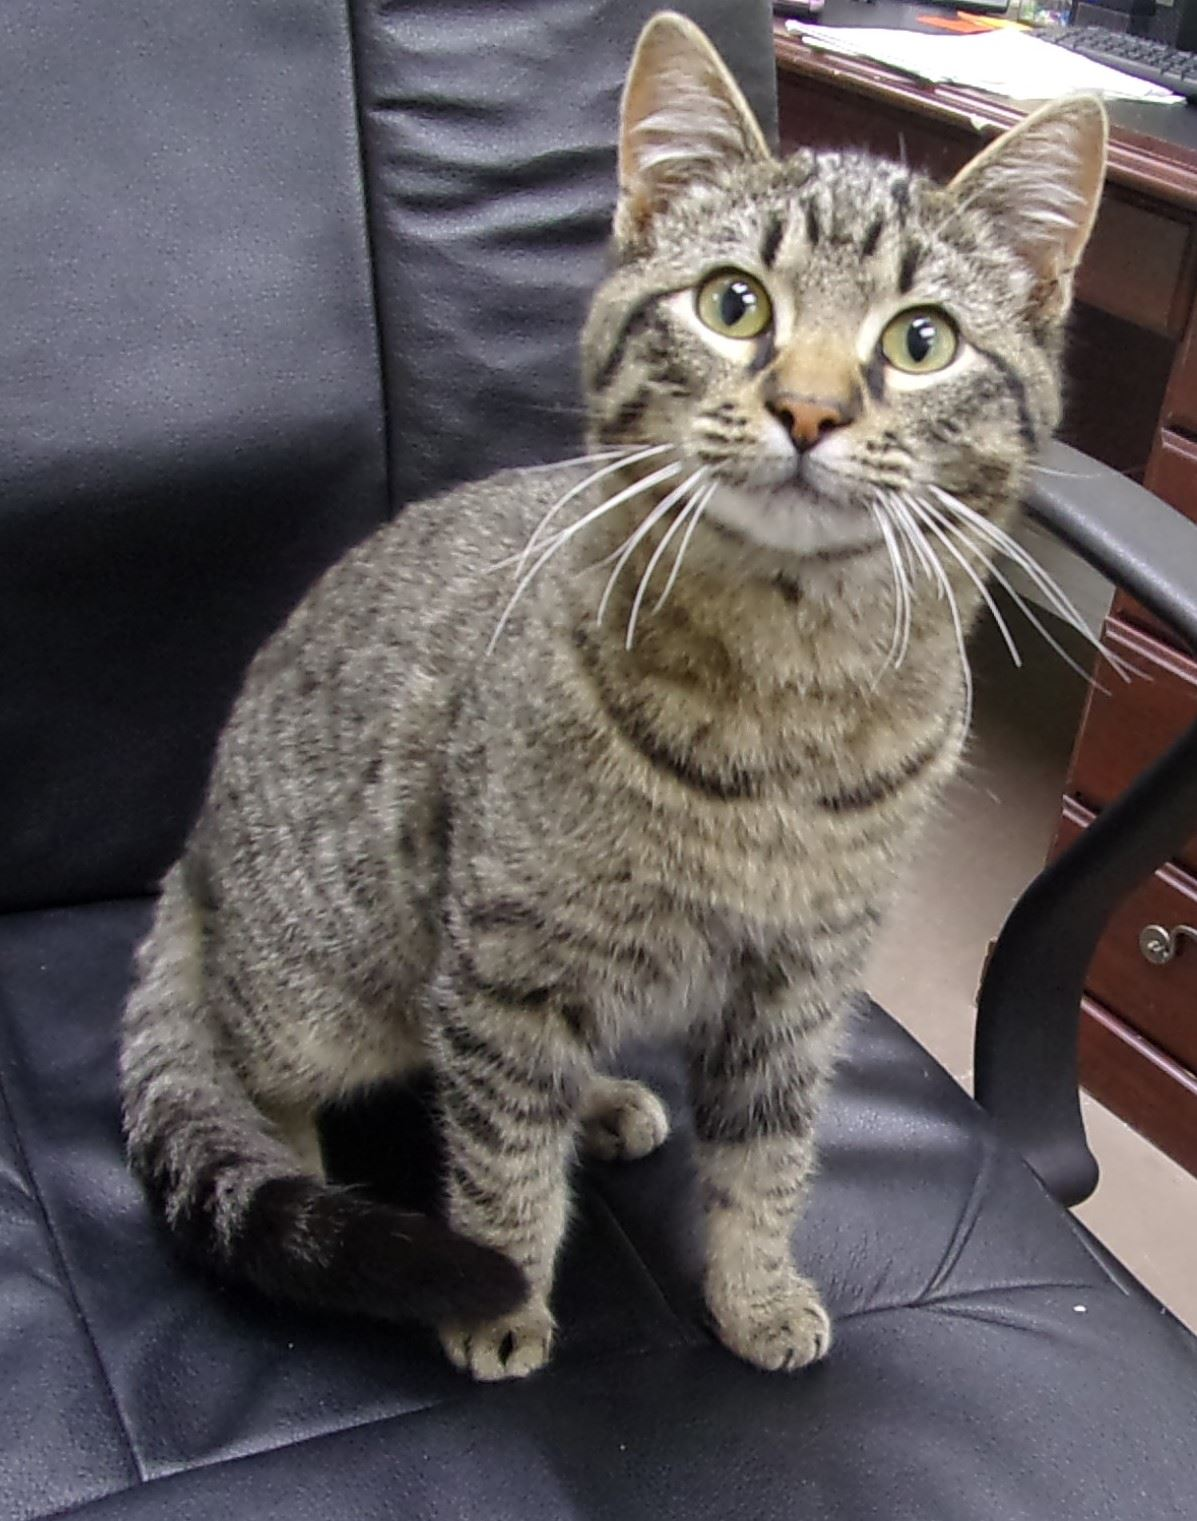 19-155 Daxter tan/black striped male Tabby